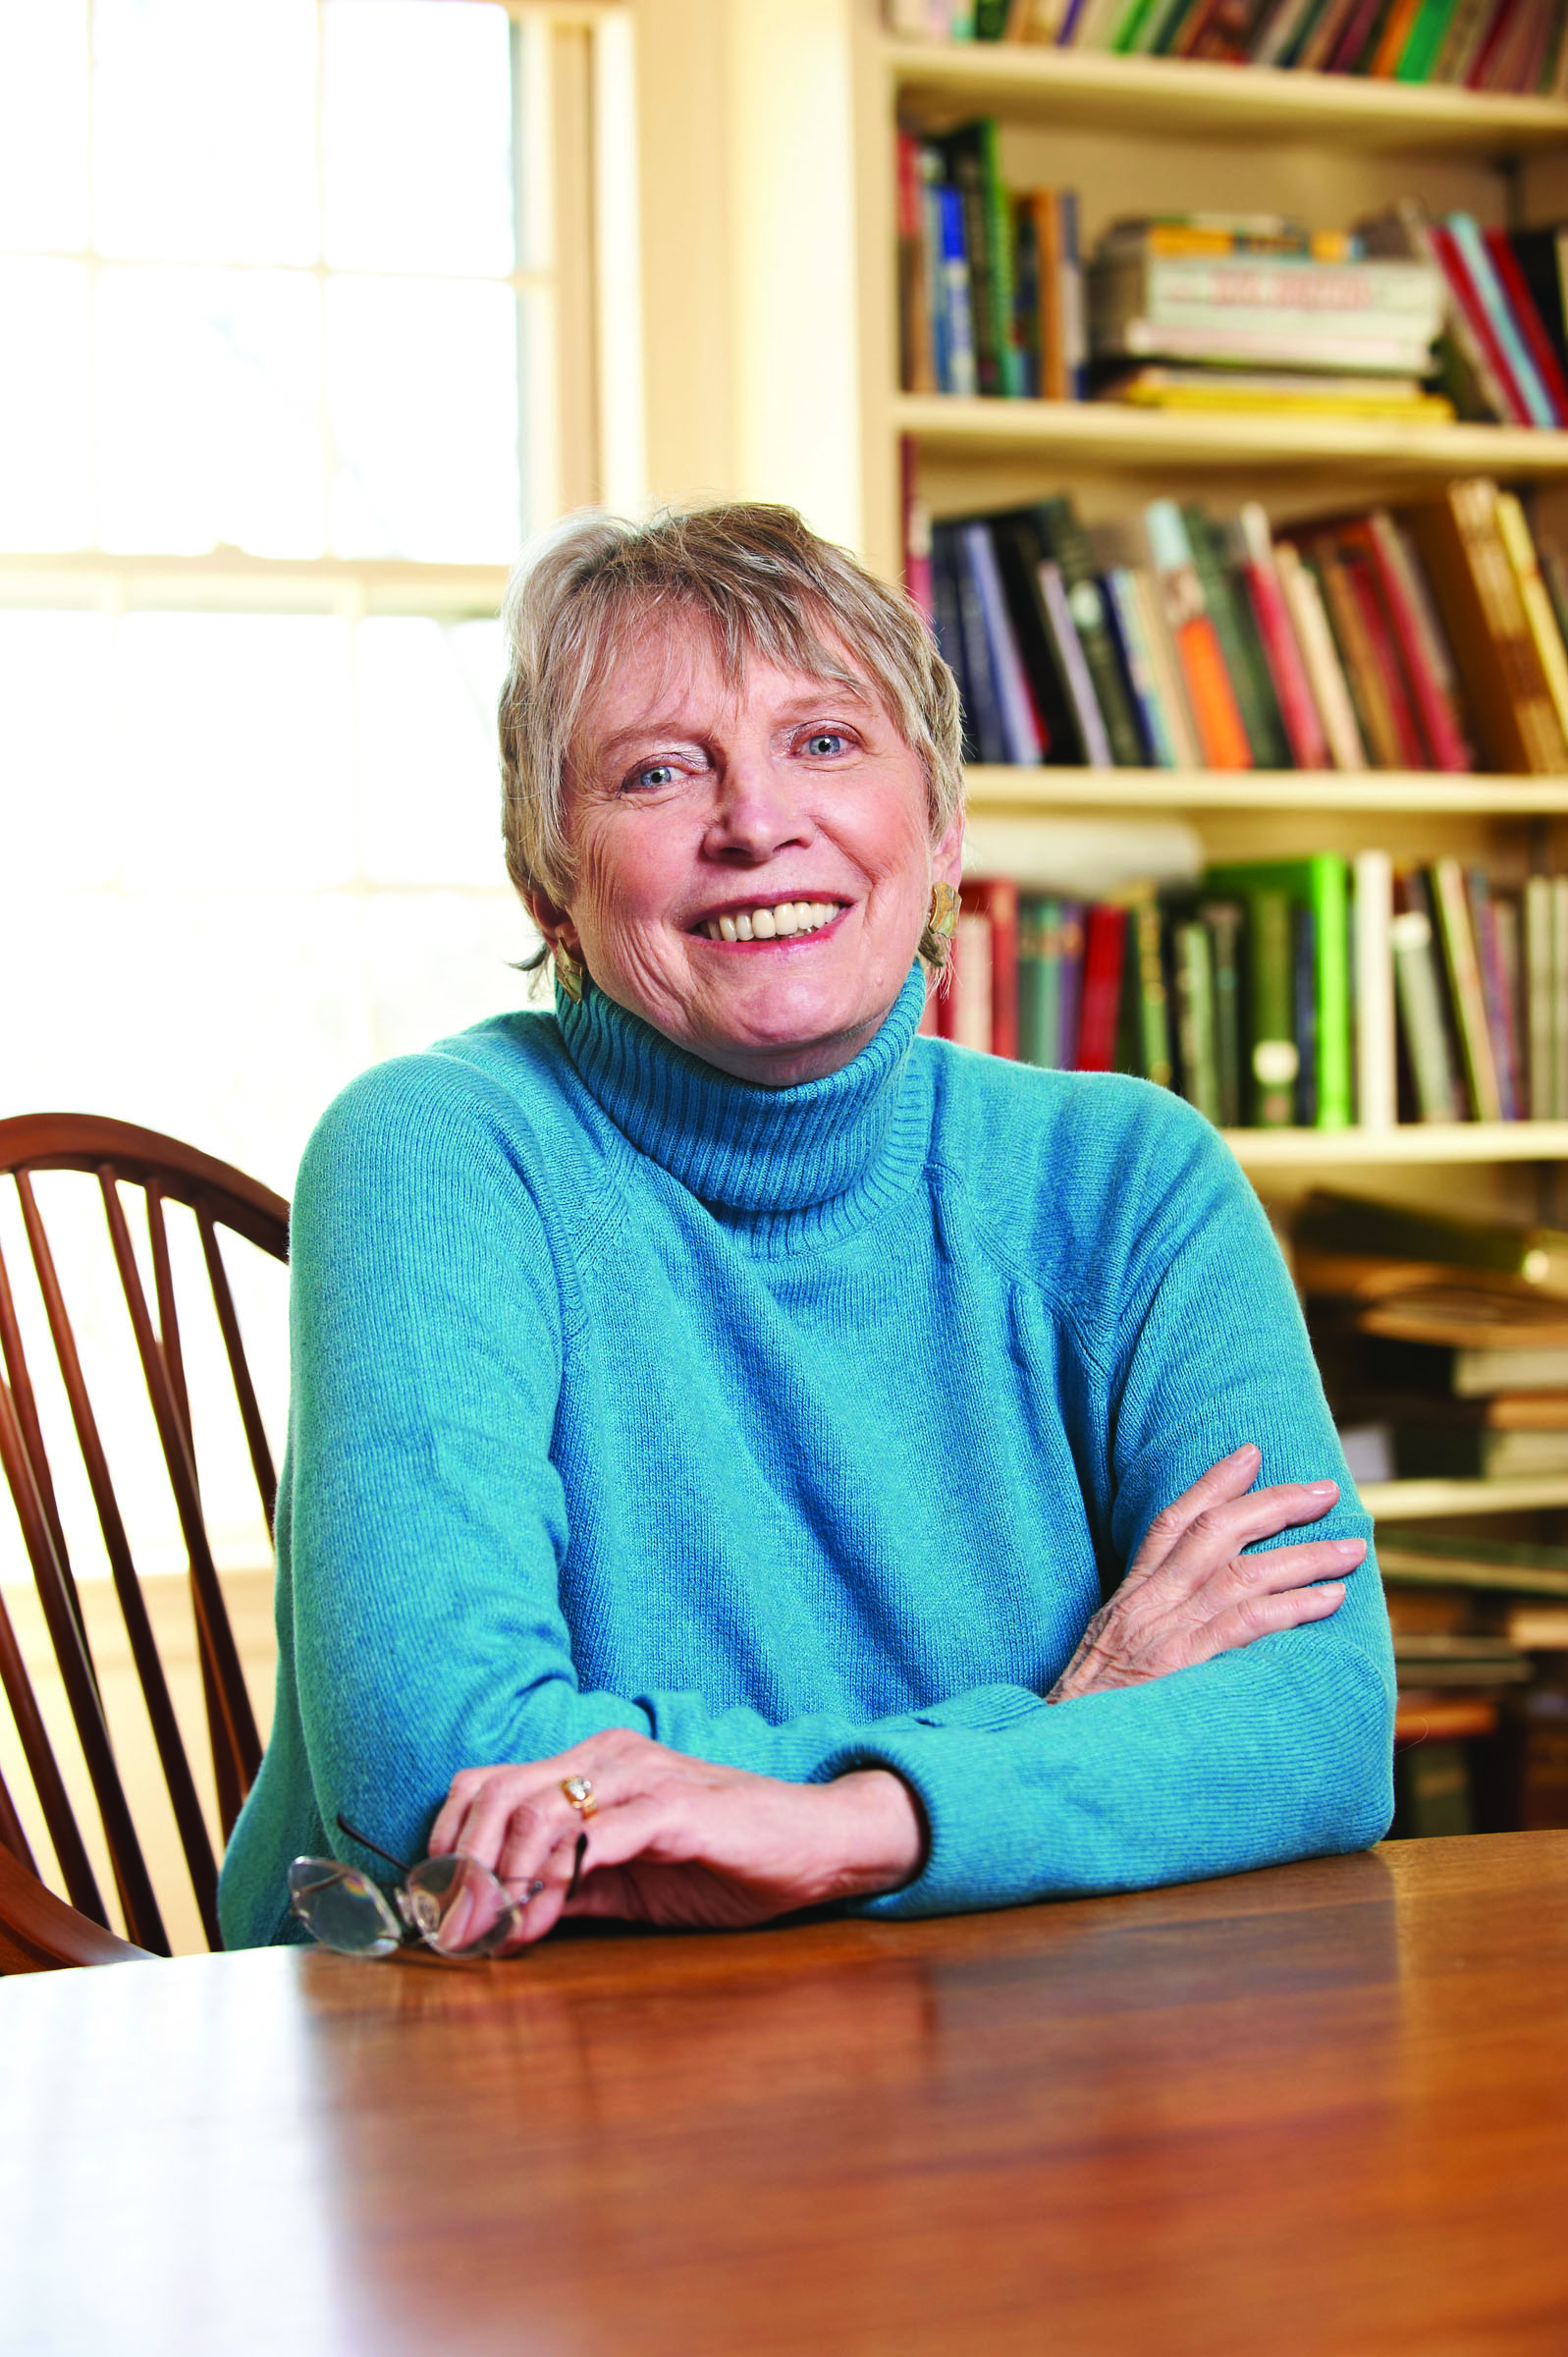 How to Talk about Uncomfortable Things: Words of Wisdom from Lois Lowry